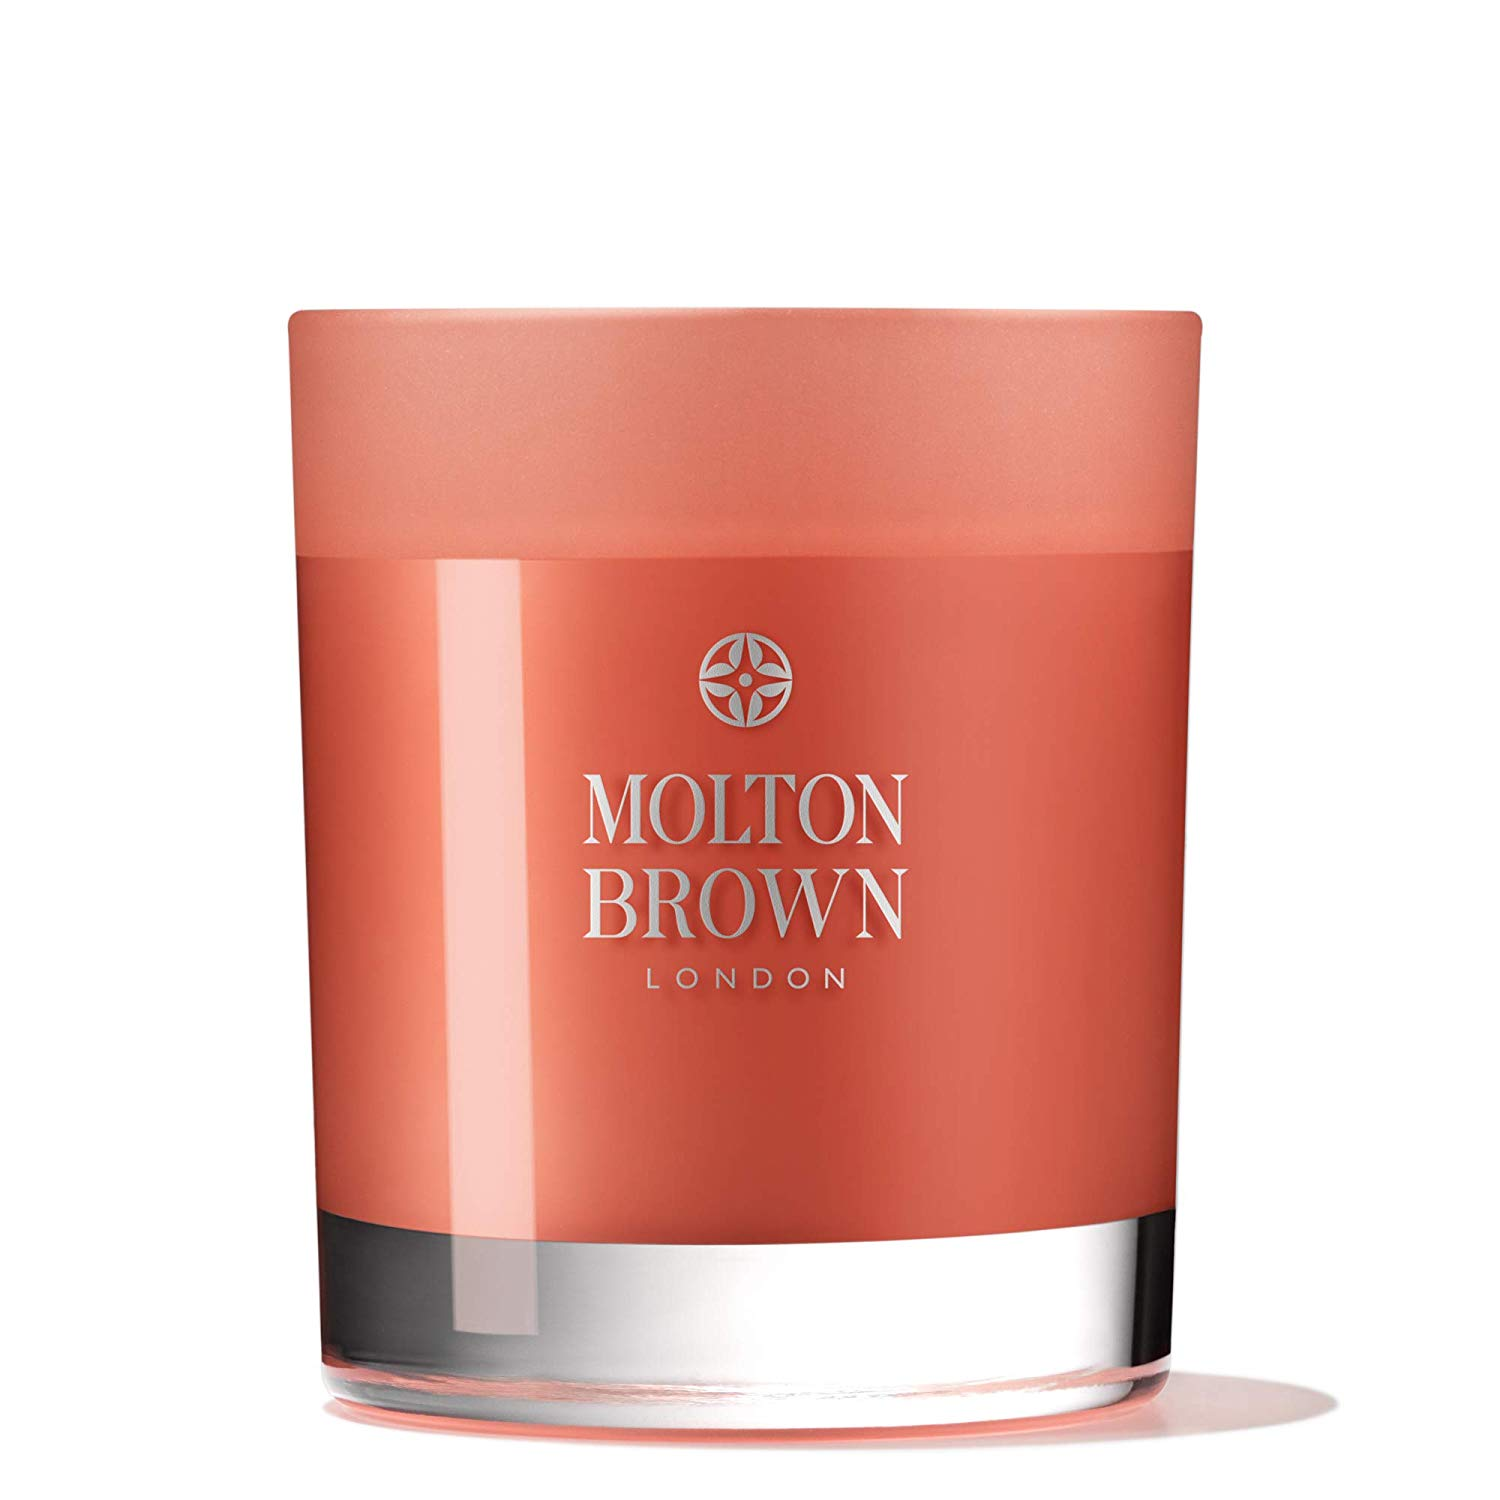 Molton Brown Single Wick Candle.